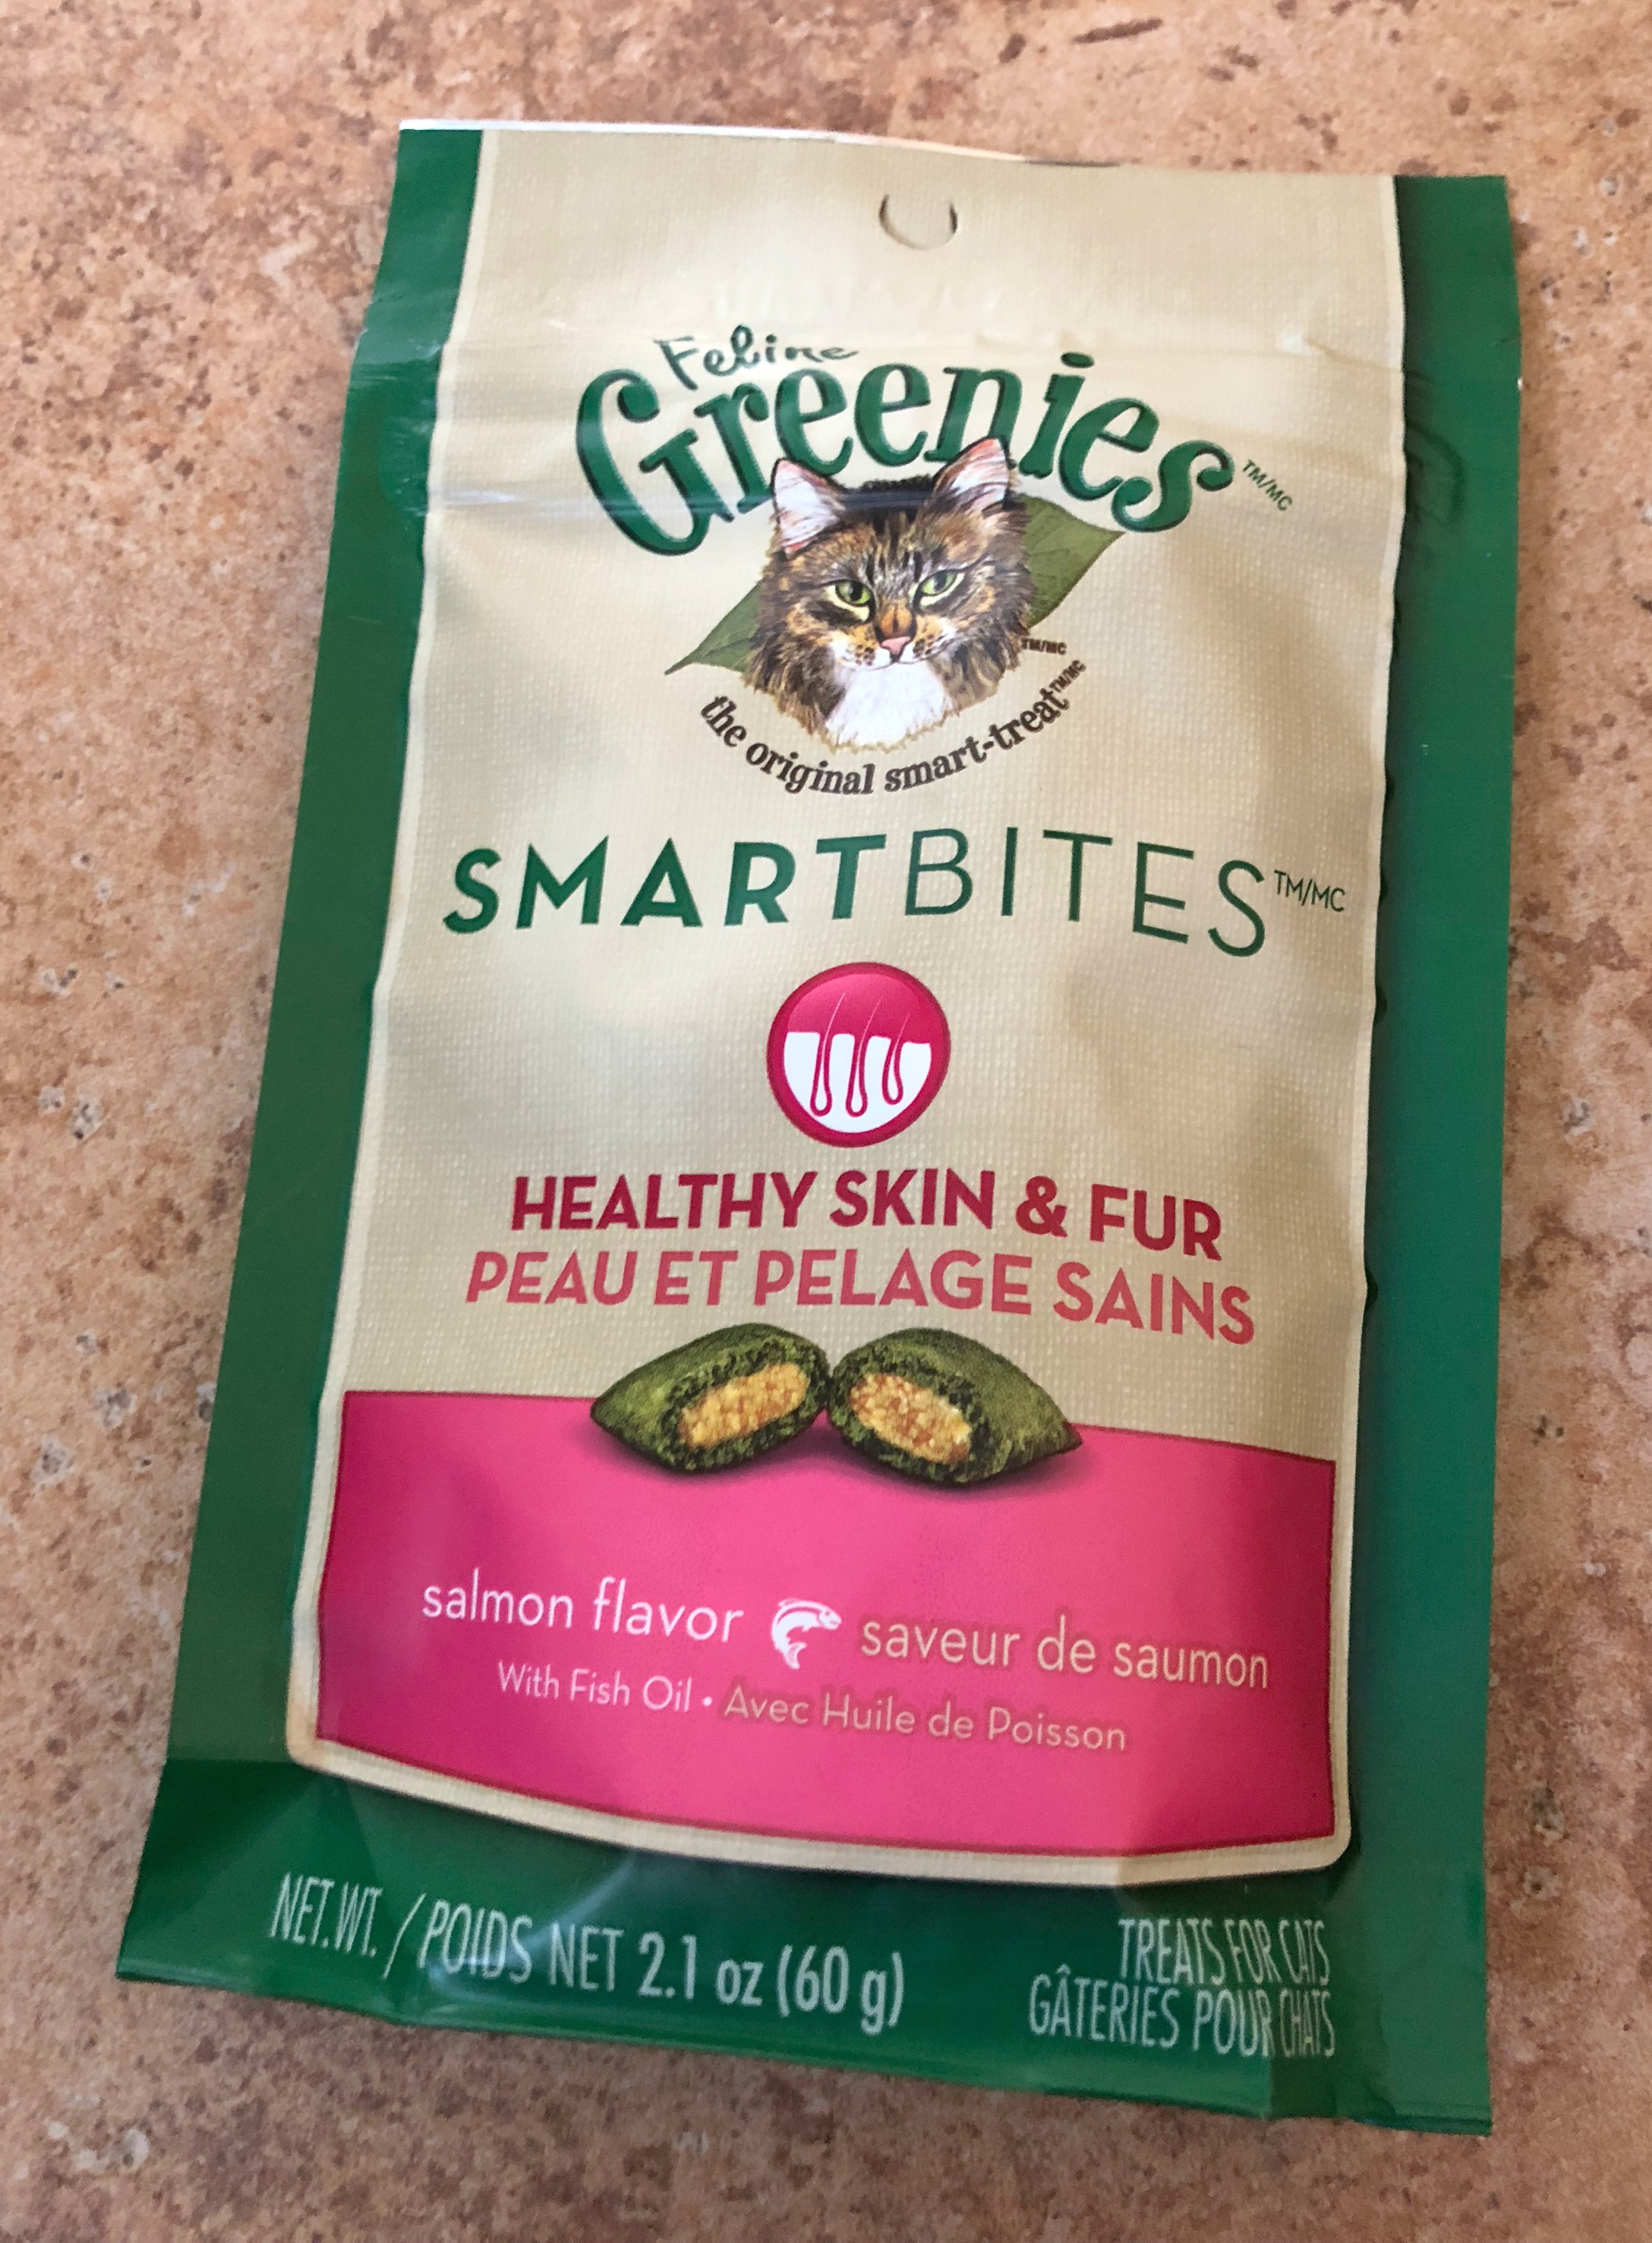 Greenies Feline SmartBites